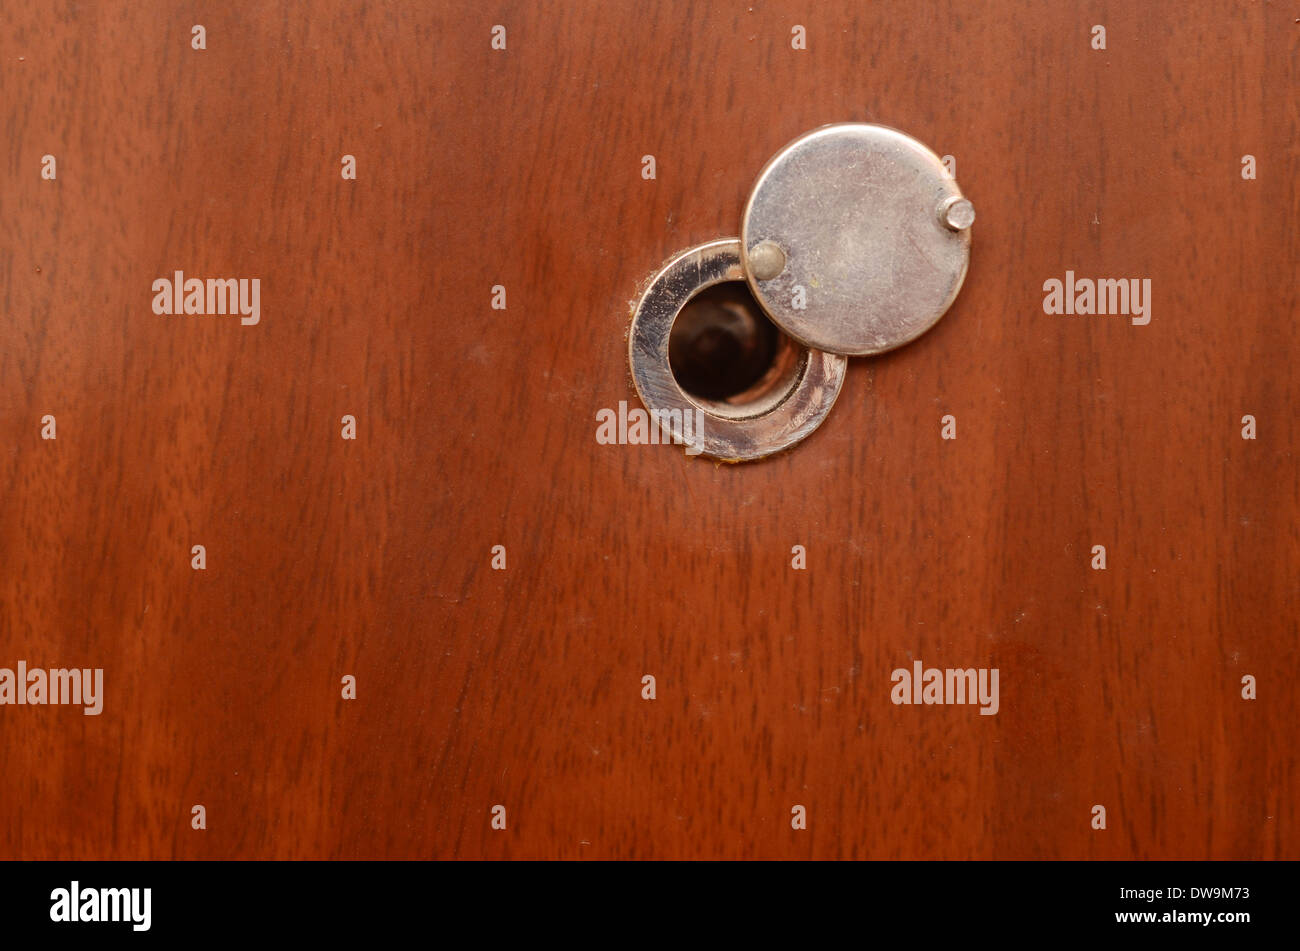 door peephole & door peephole Stock Photo: 67210951 - Alamy